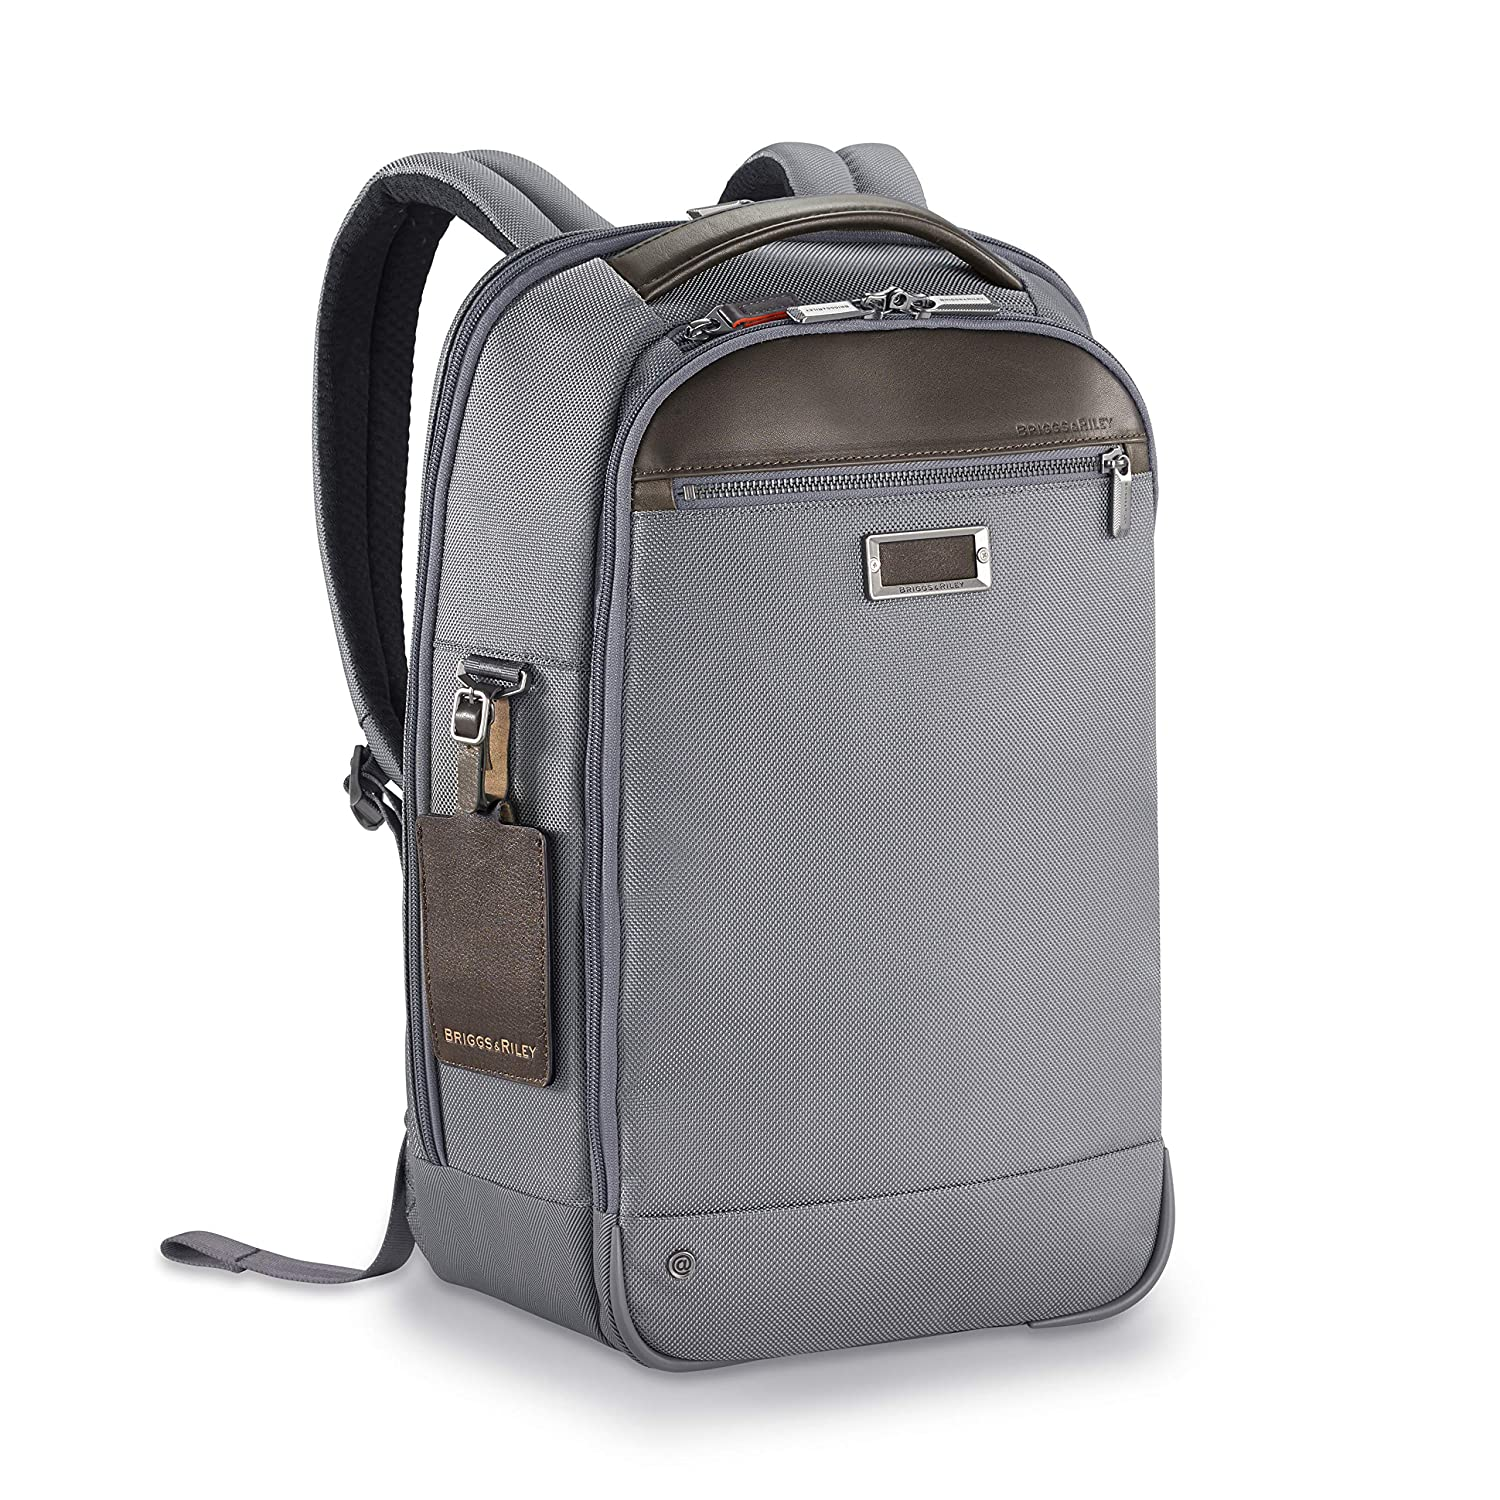 Briggs Riley work Medium Slim Backpack